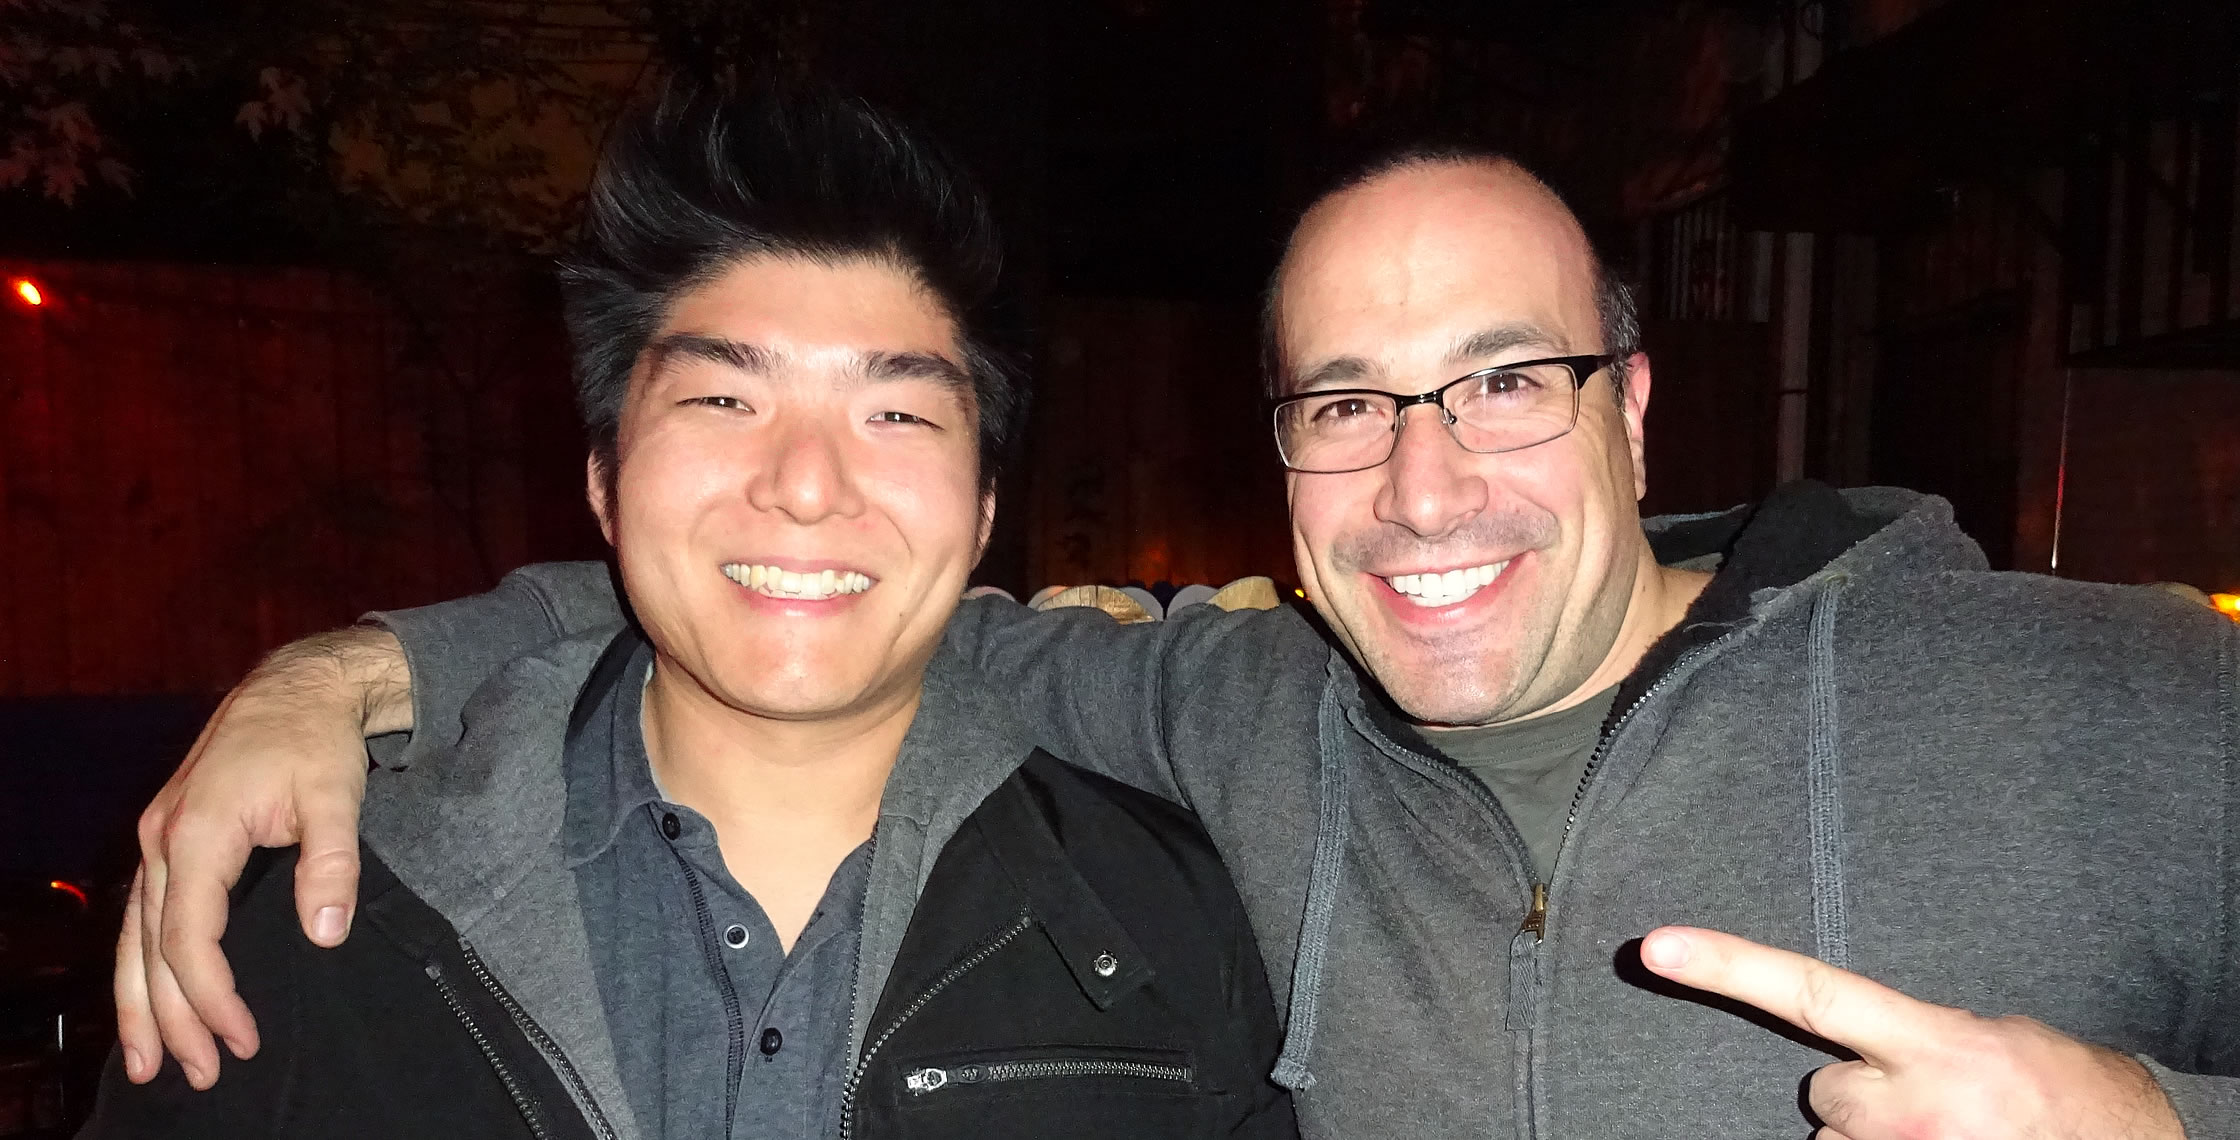 Ben Nadel at Angular 2 Master Class (New York, NY) with: Matthew Kim